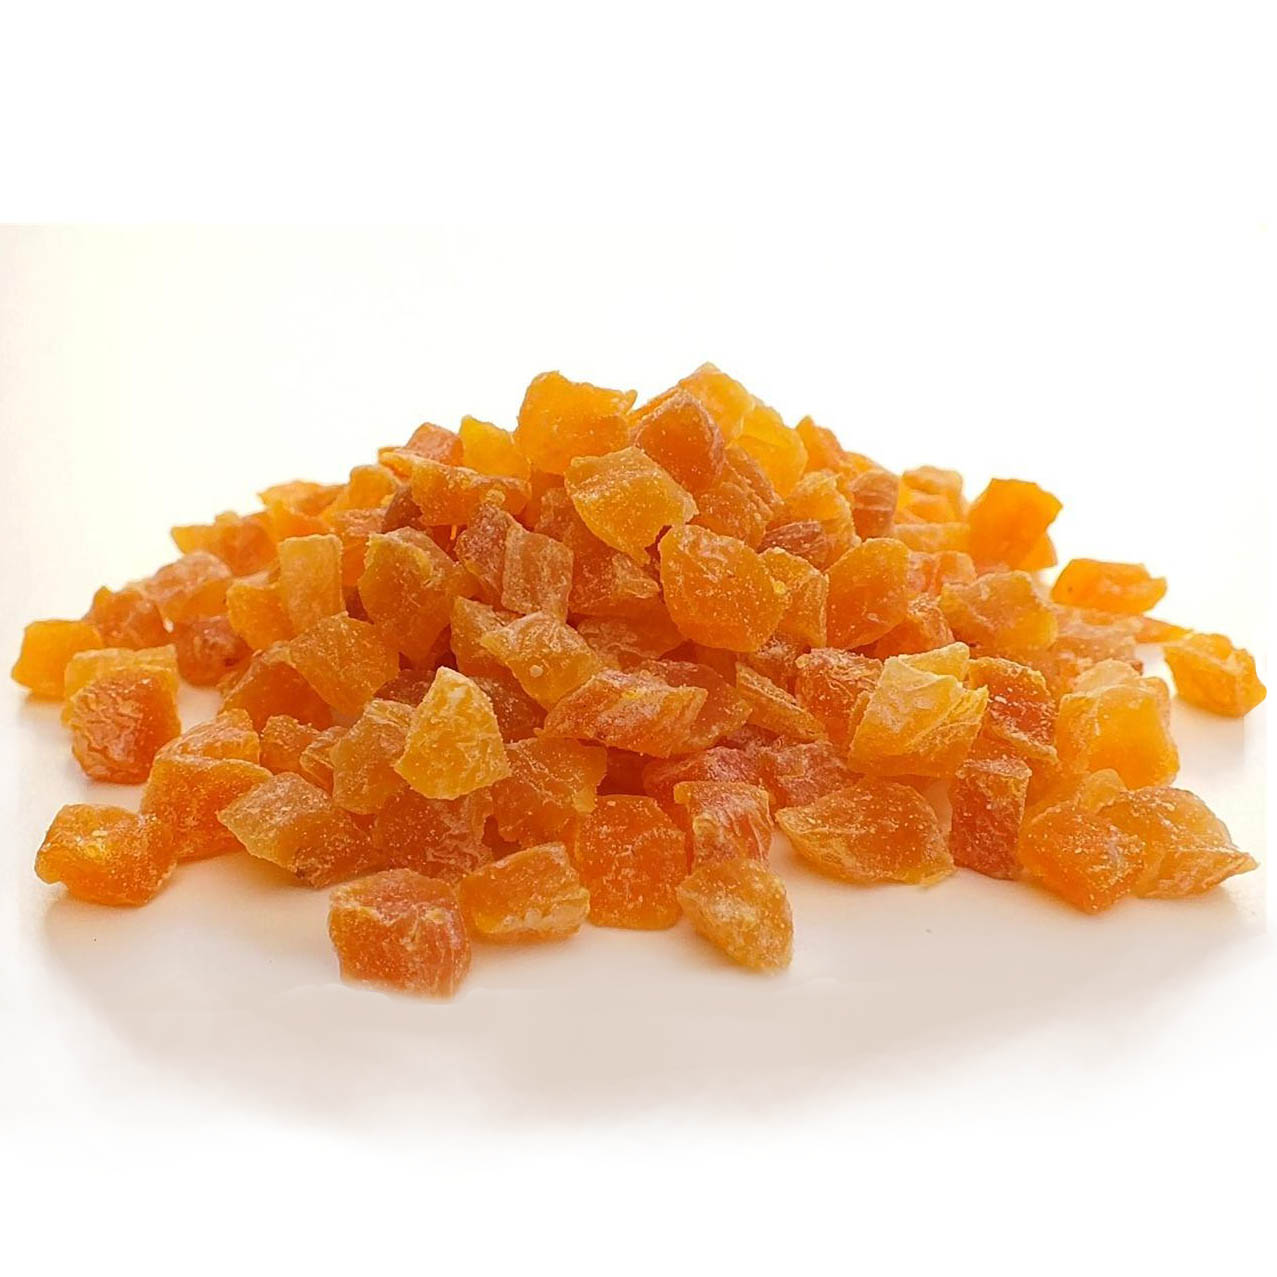 Organic Unsulphured Apricot Pieces